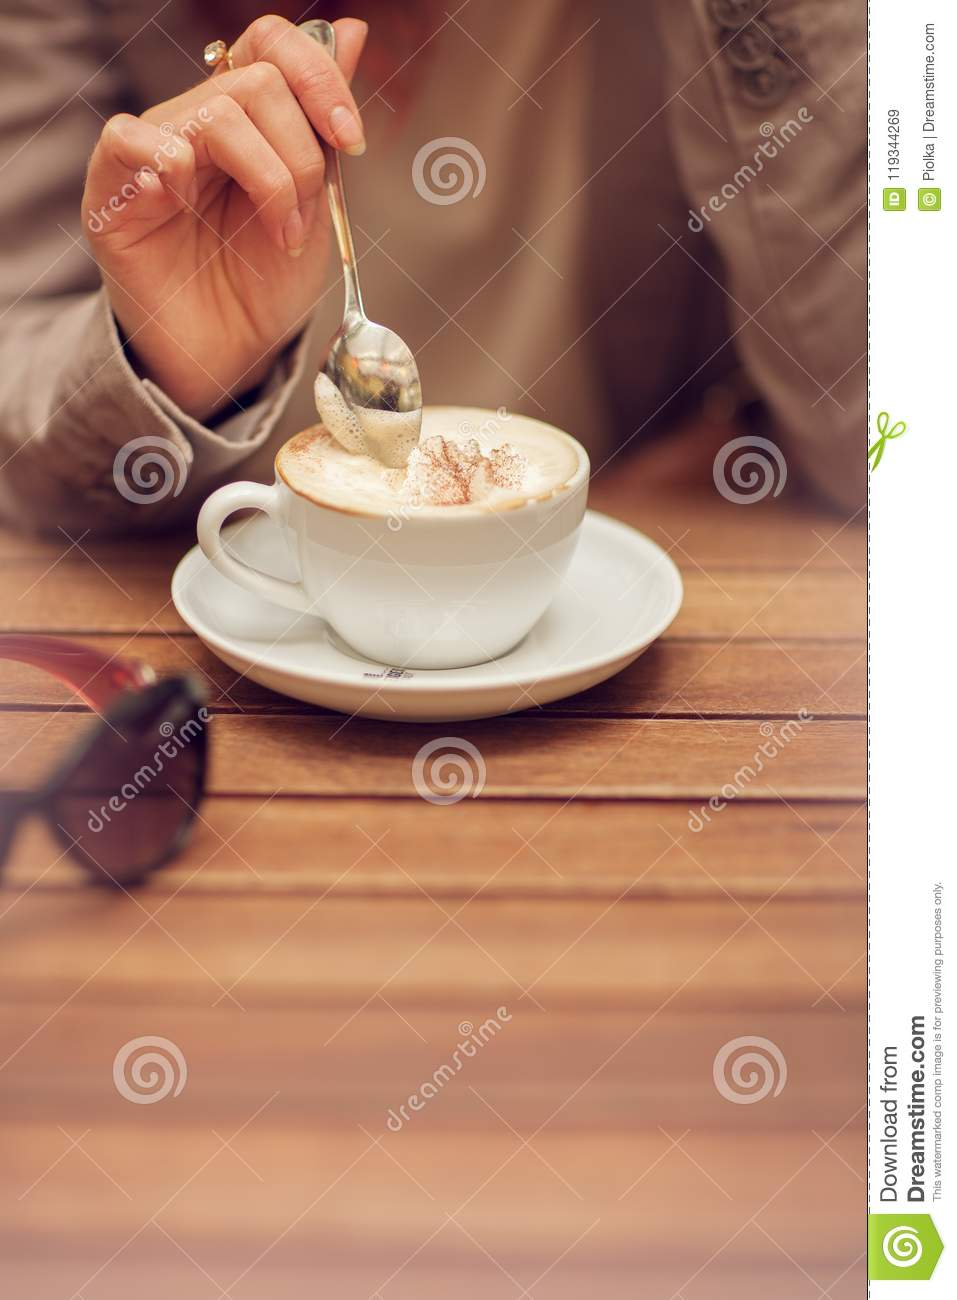 Young woman`s hand holding a spoon, stir a cup of coffee in a street cafe on a wooden table